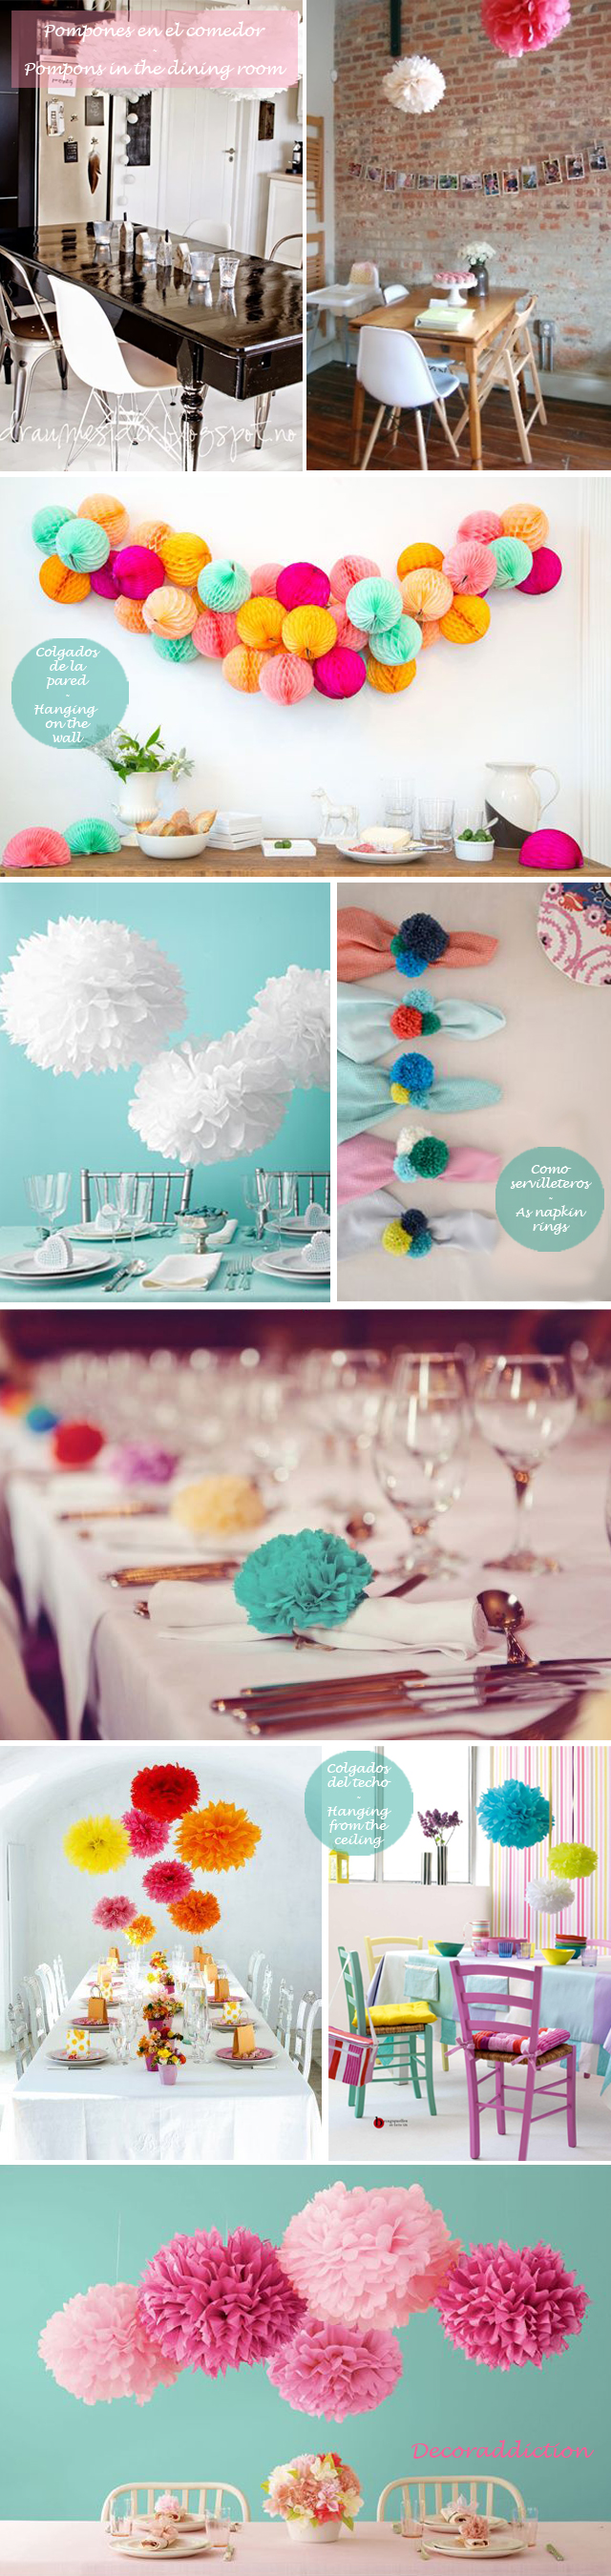 Idea low cost & DIY - Decora con pompones - Decorate with pompons_comedores